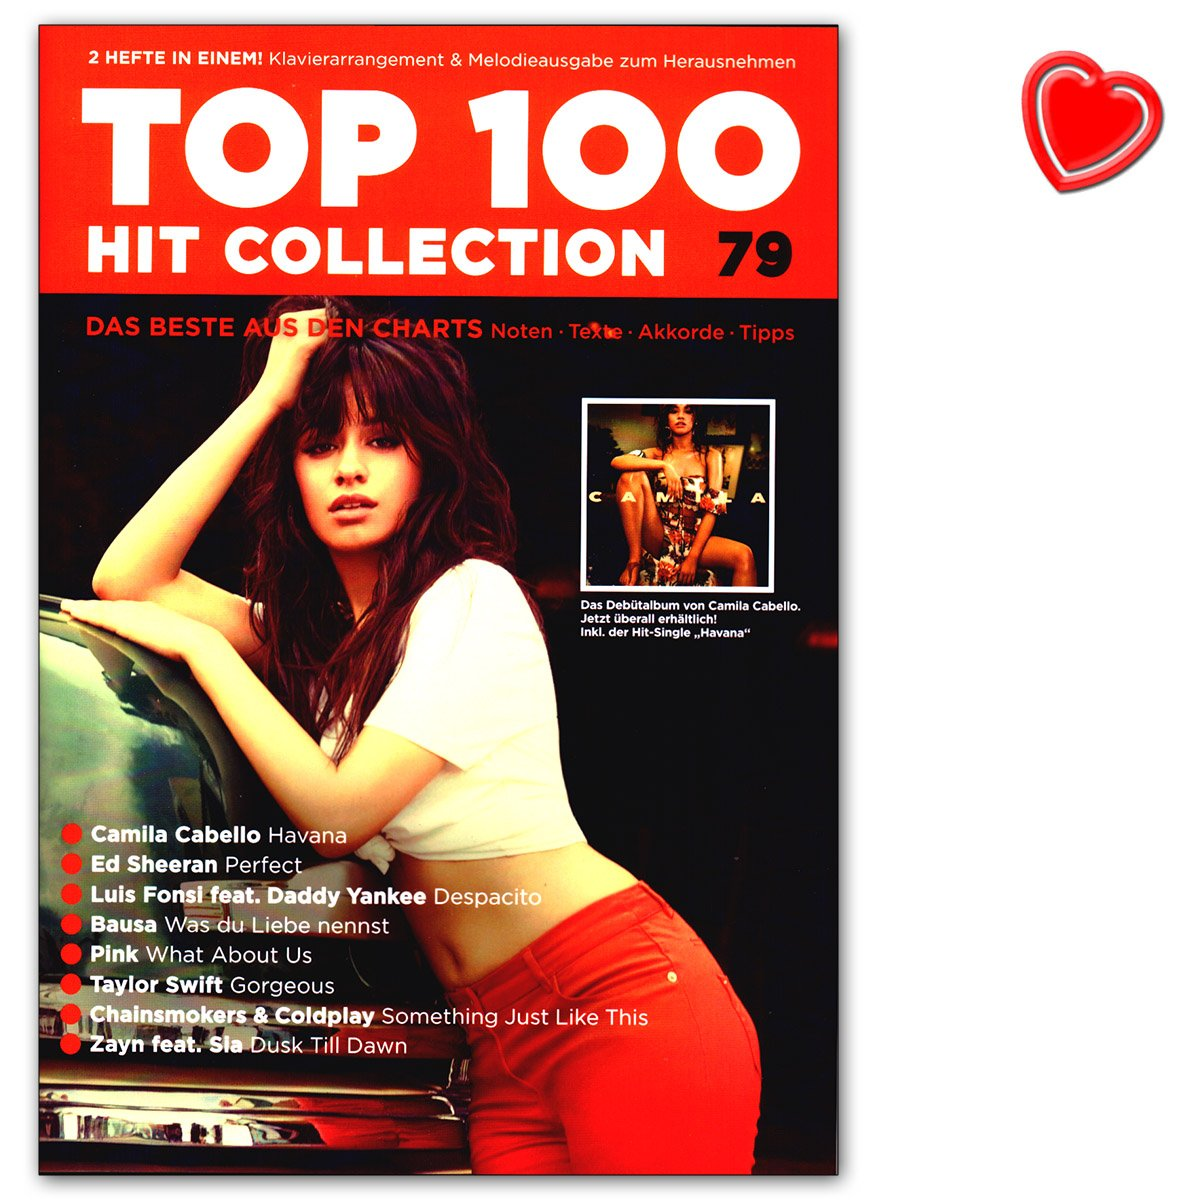 Top 100 Hit Collection 79 – ed Sheeran, Camilla Cabello, Luis fonsi, bausa. Song Book con colorato di cuore Music Factory